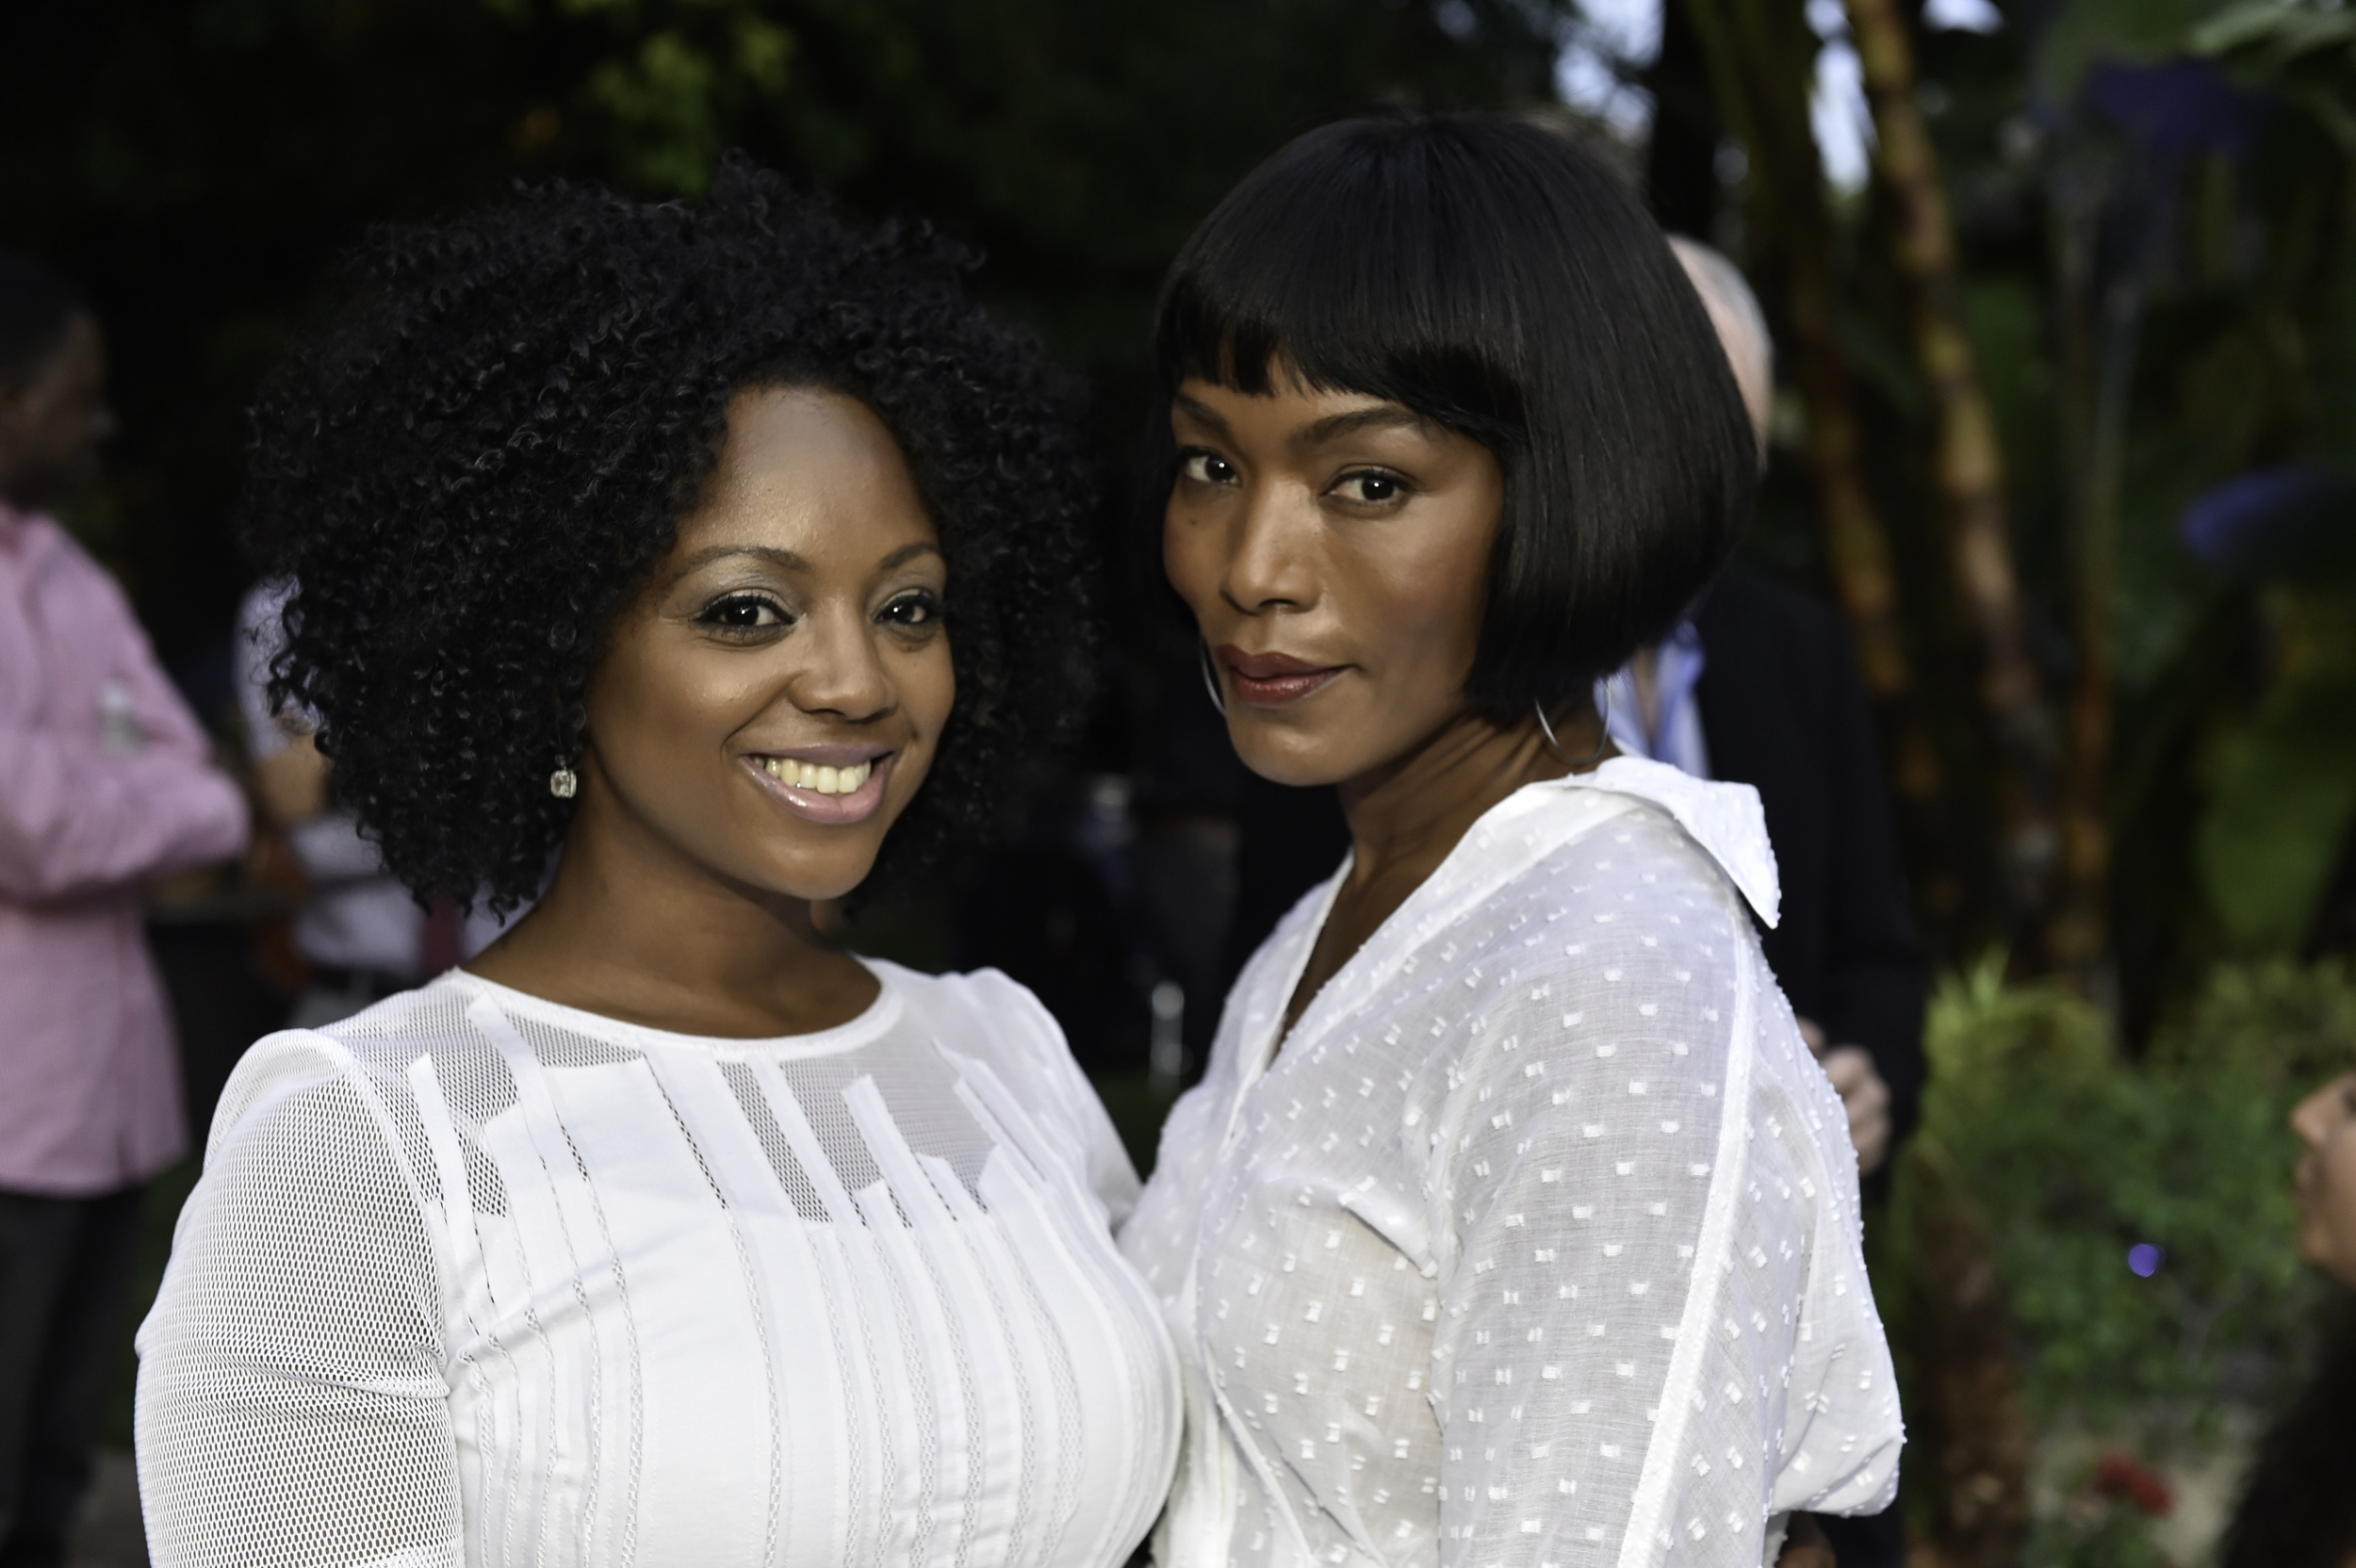 Podcast host Marquetta Breslin and actress Angela Bassett at the Kickstarter launch party for FUTURE AMERICAN DREAM. Photograph by Ronald Pollard.